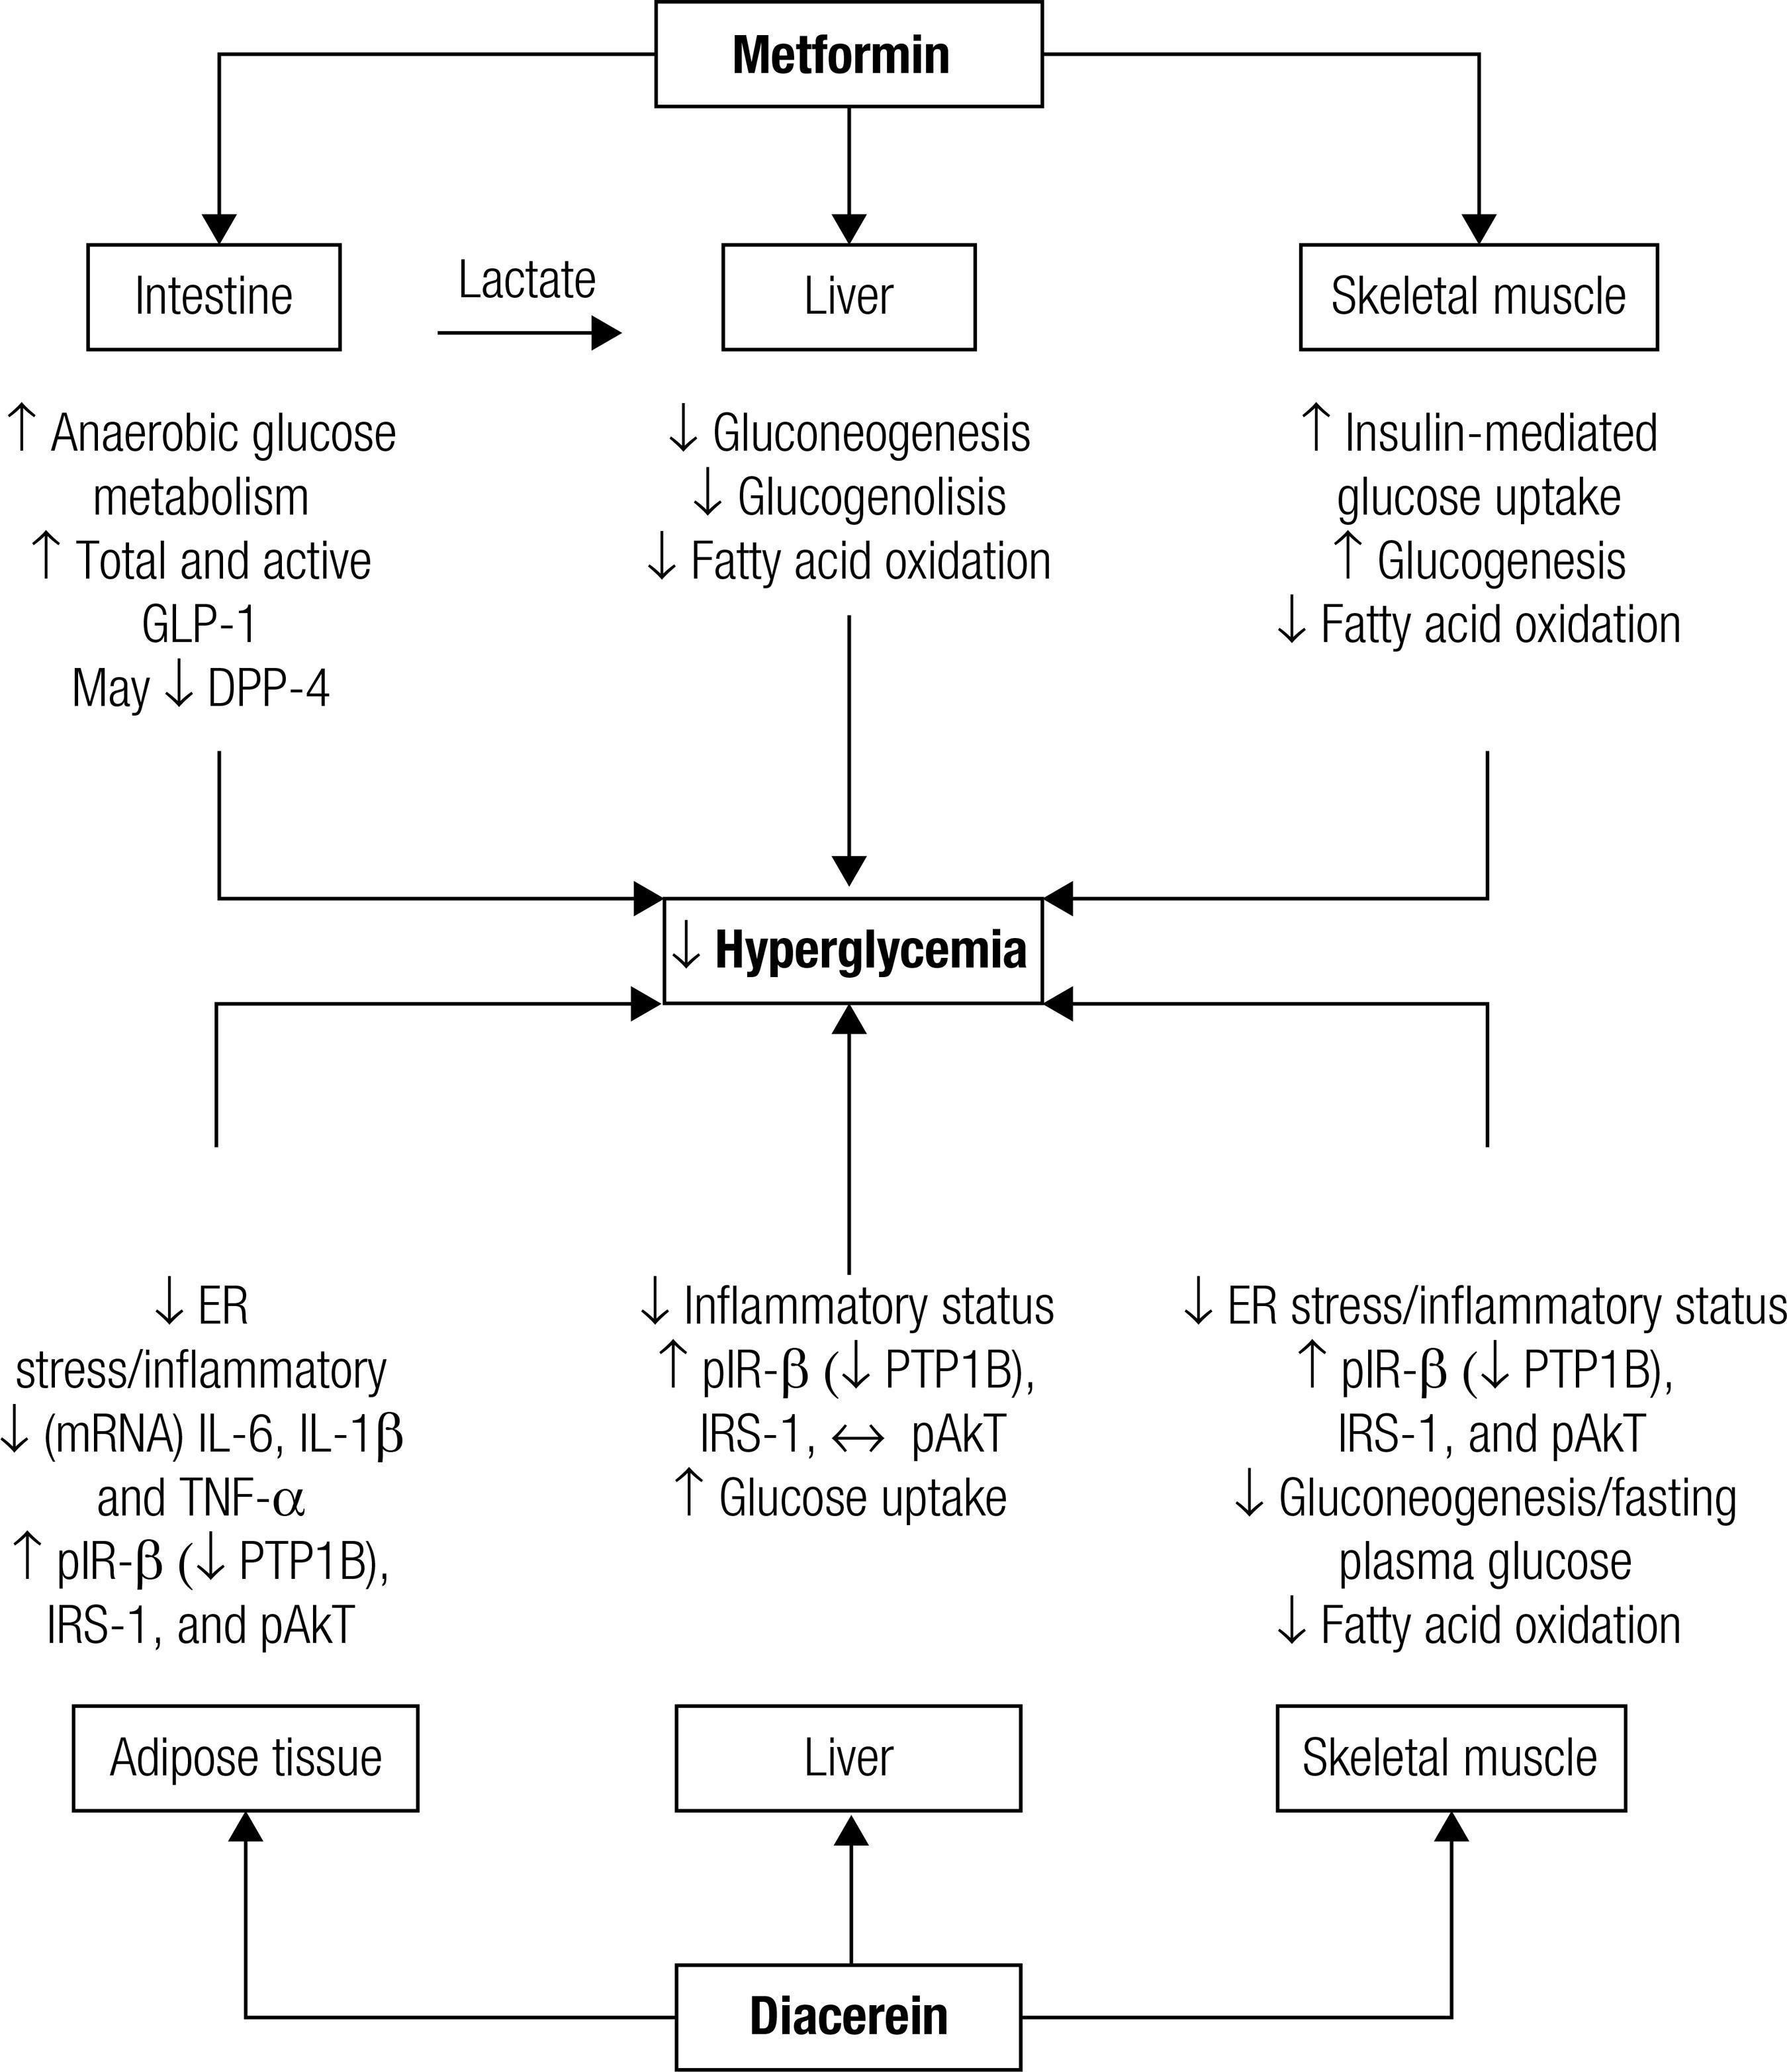 Effect Of Diacerein As An Add-on To Metformin In Patients With Type 2 Diabetes Mellitus And Inadequate Glycemic Control